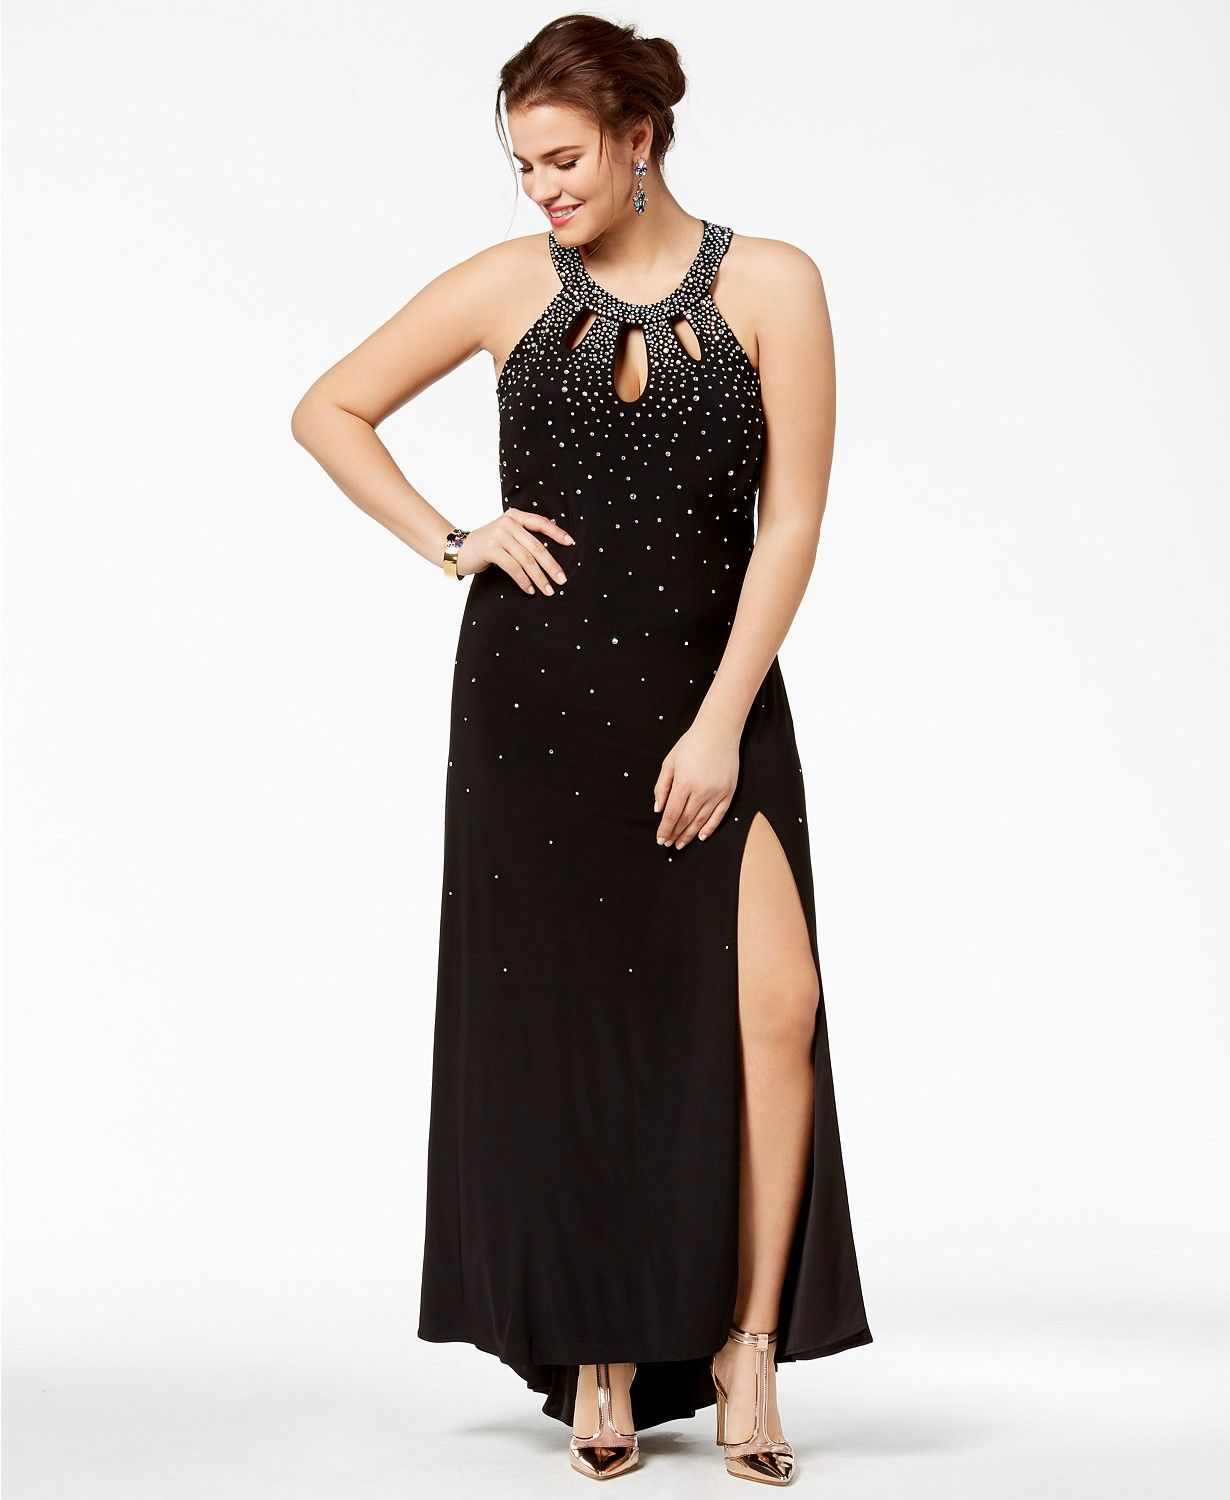 20eda2977d Morgan   Company Trendy Plus Size Embellished Cutout Halter Gown - Dresses  - Plus Sizes - Macy s